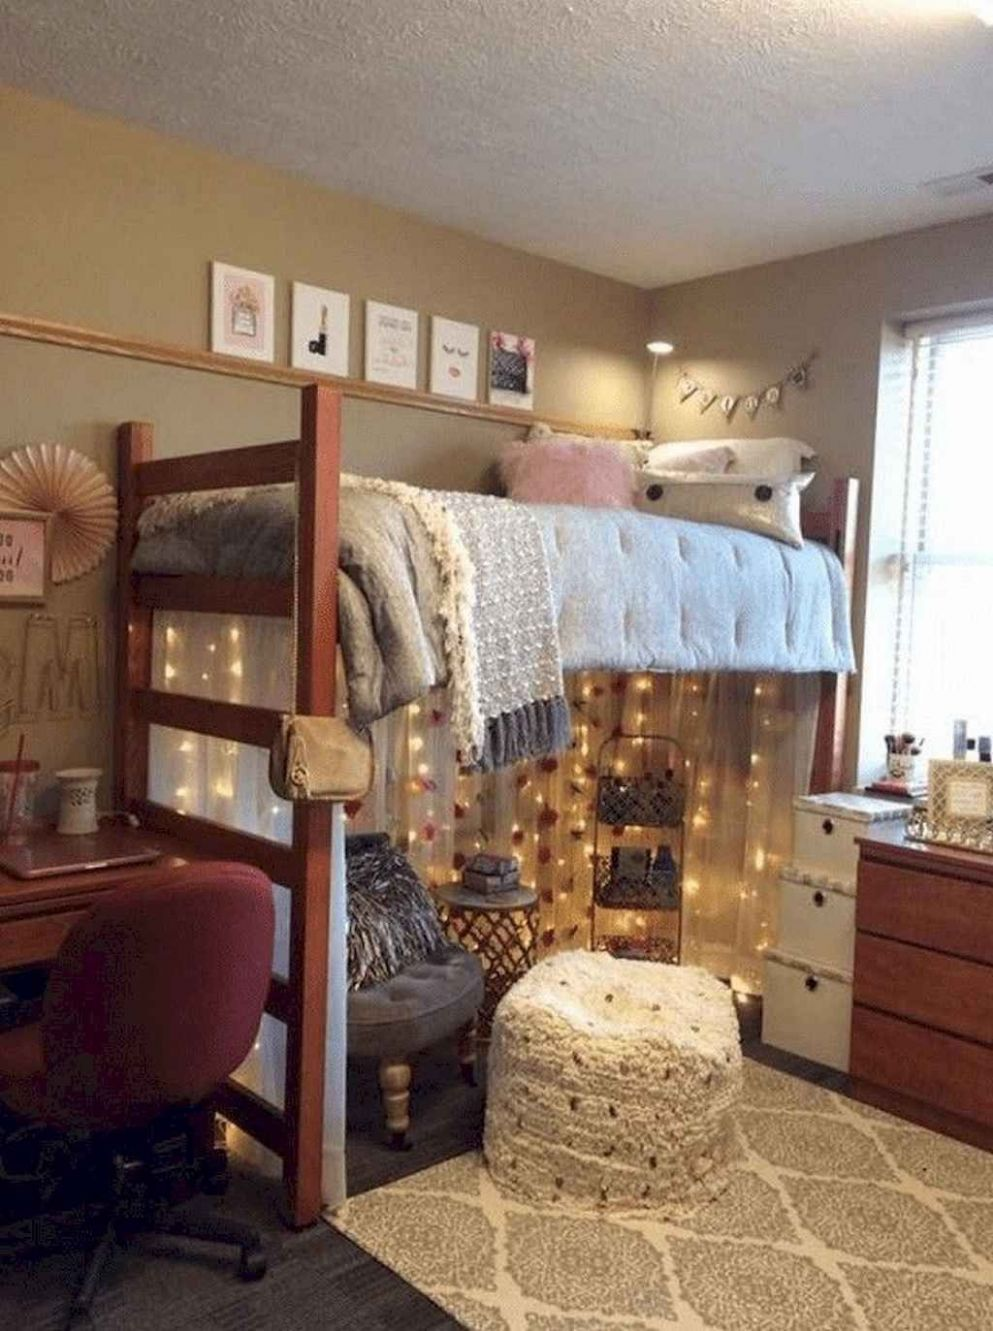 9+ Splendid Dorm Room Ideas To Tare Room Decor To The Next Level ..